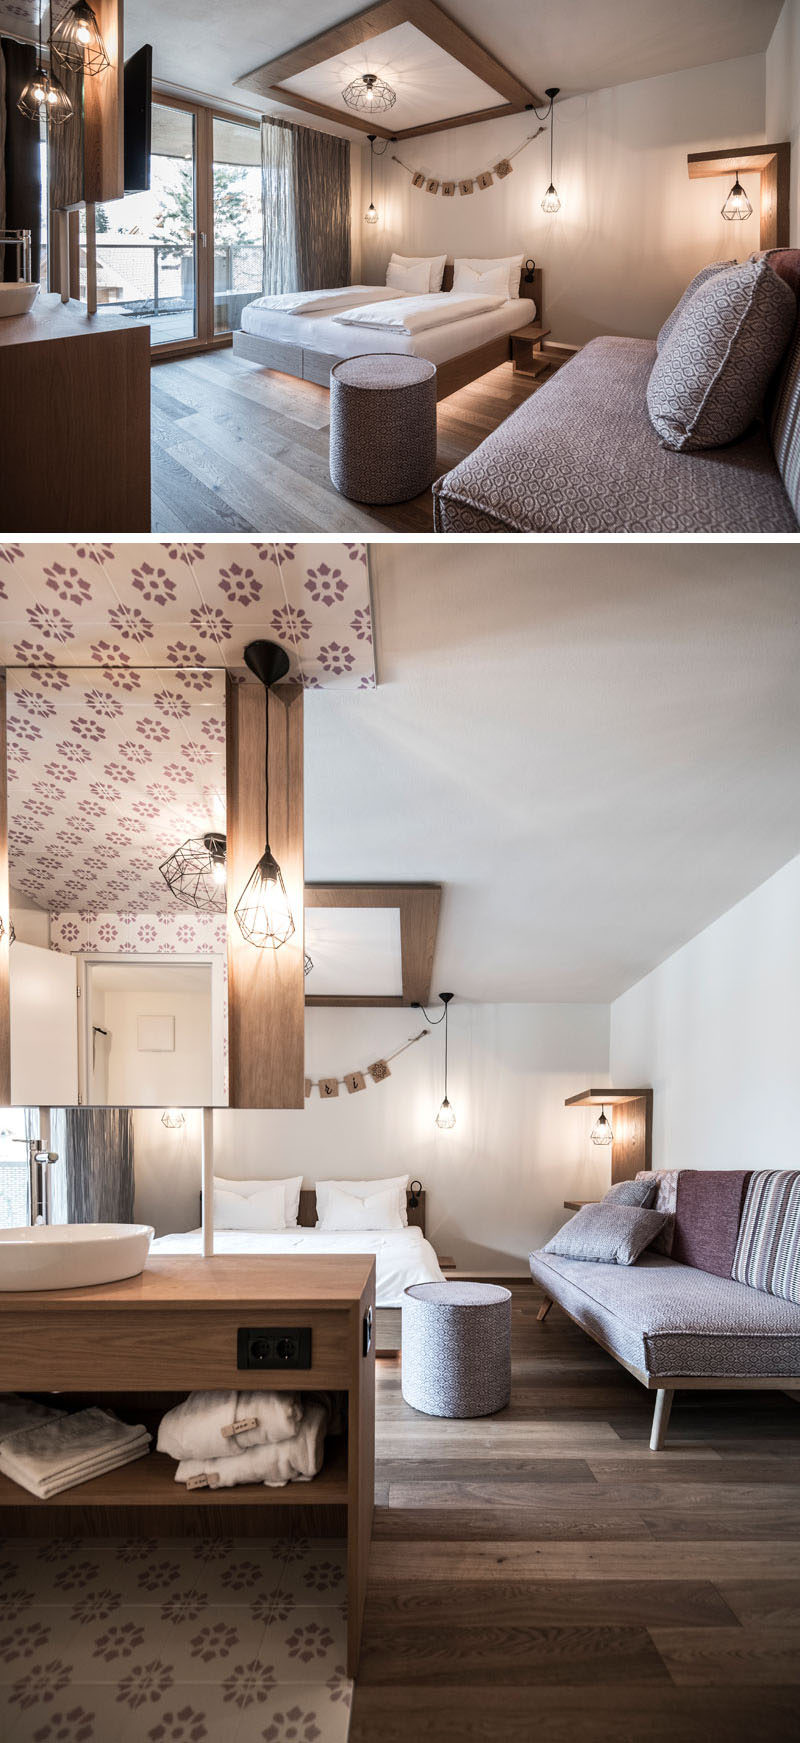 The mauve sofa faces the balcony in this modern hotel room, and matches the color of the floral patterned tiles in the washroom area. Geometric shaped light fixtures, and a glowing LED bed brighten up the room even more.